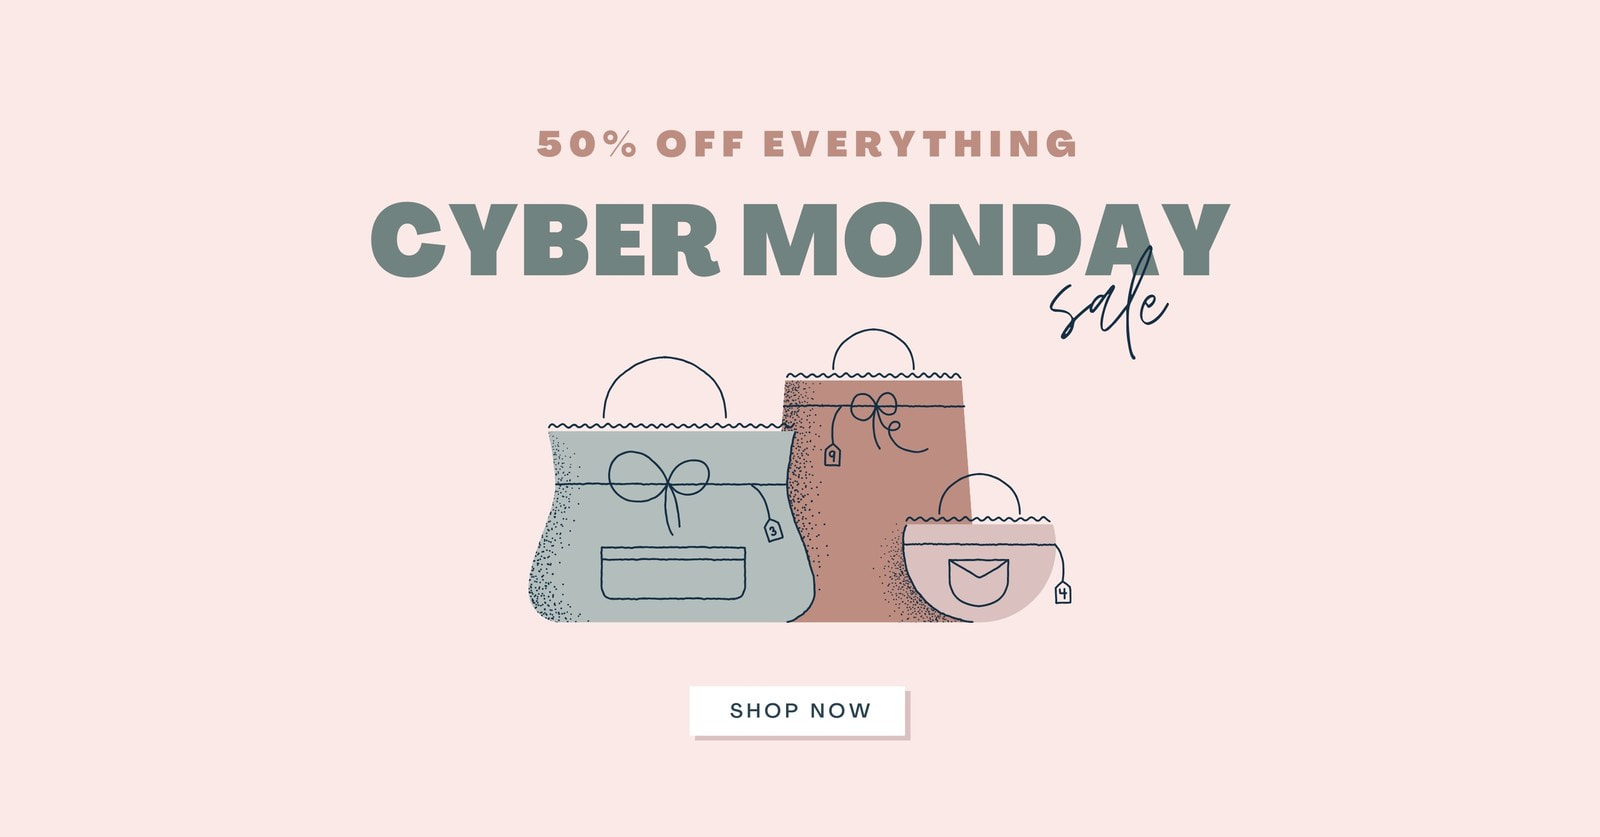 Feminine Cyber Monday Facebook Ad with call to action